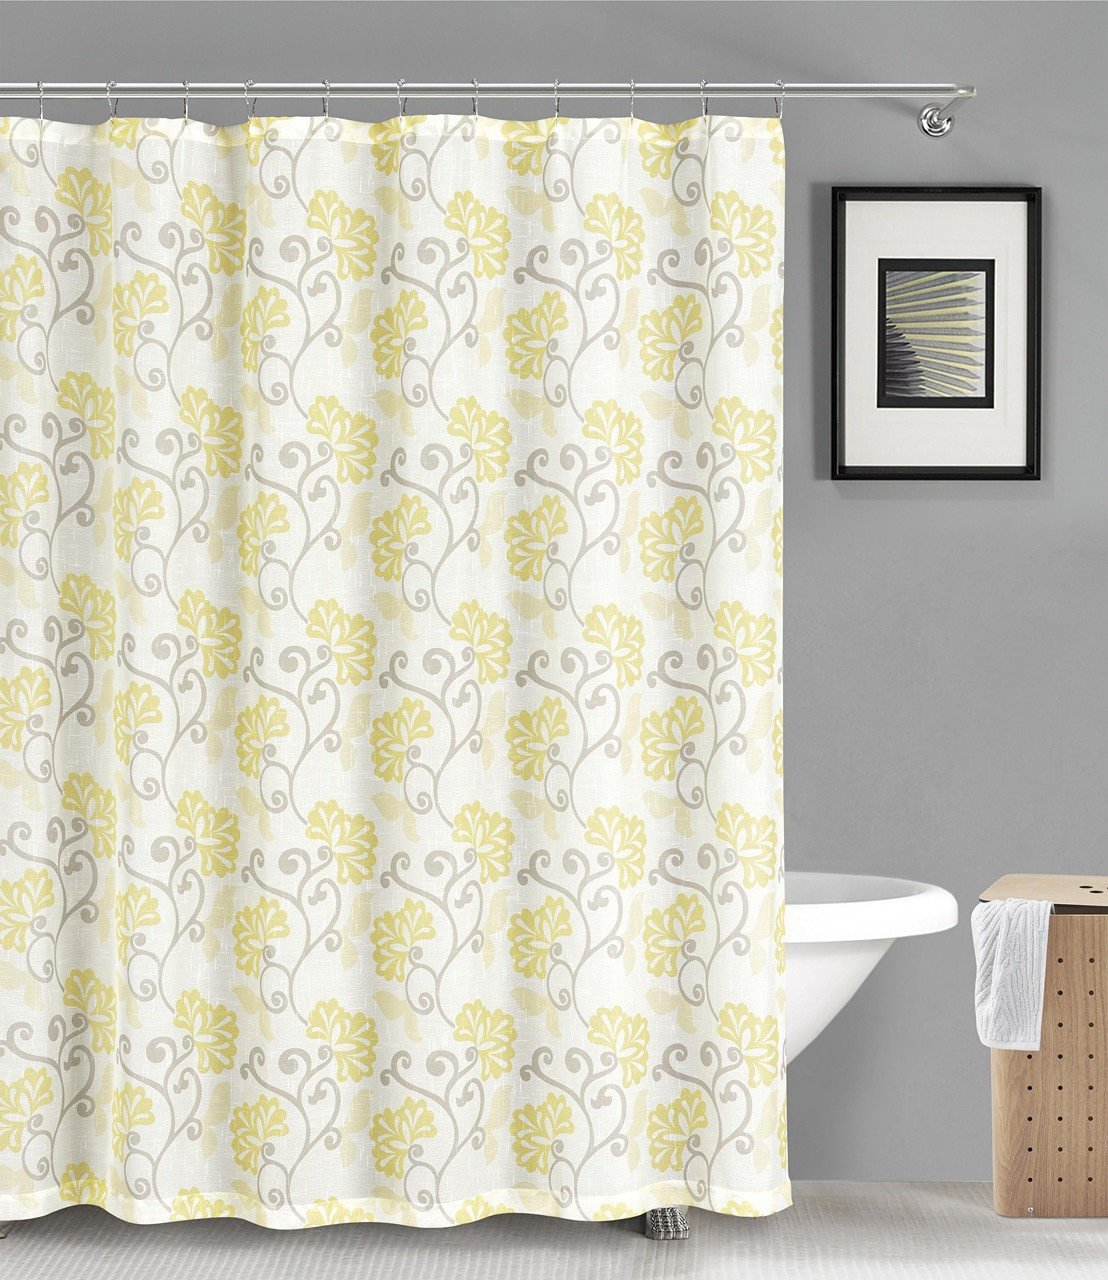 Buy Fabric Shower Curtain: Semi-Sheer Floral Design, 70\